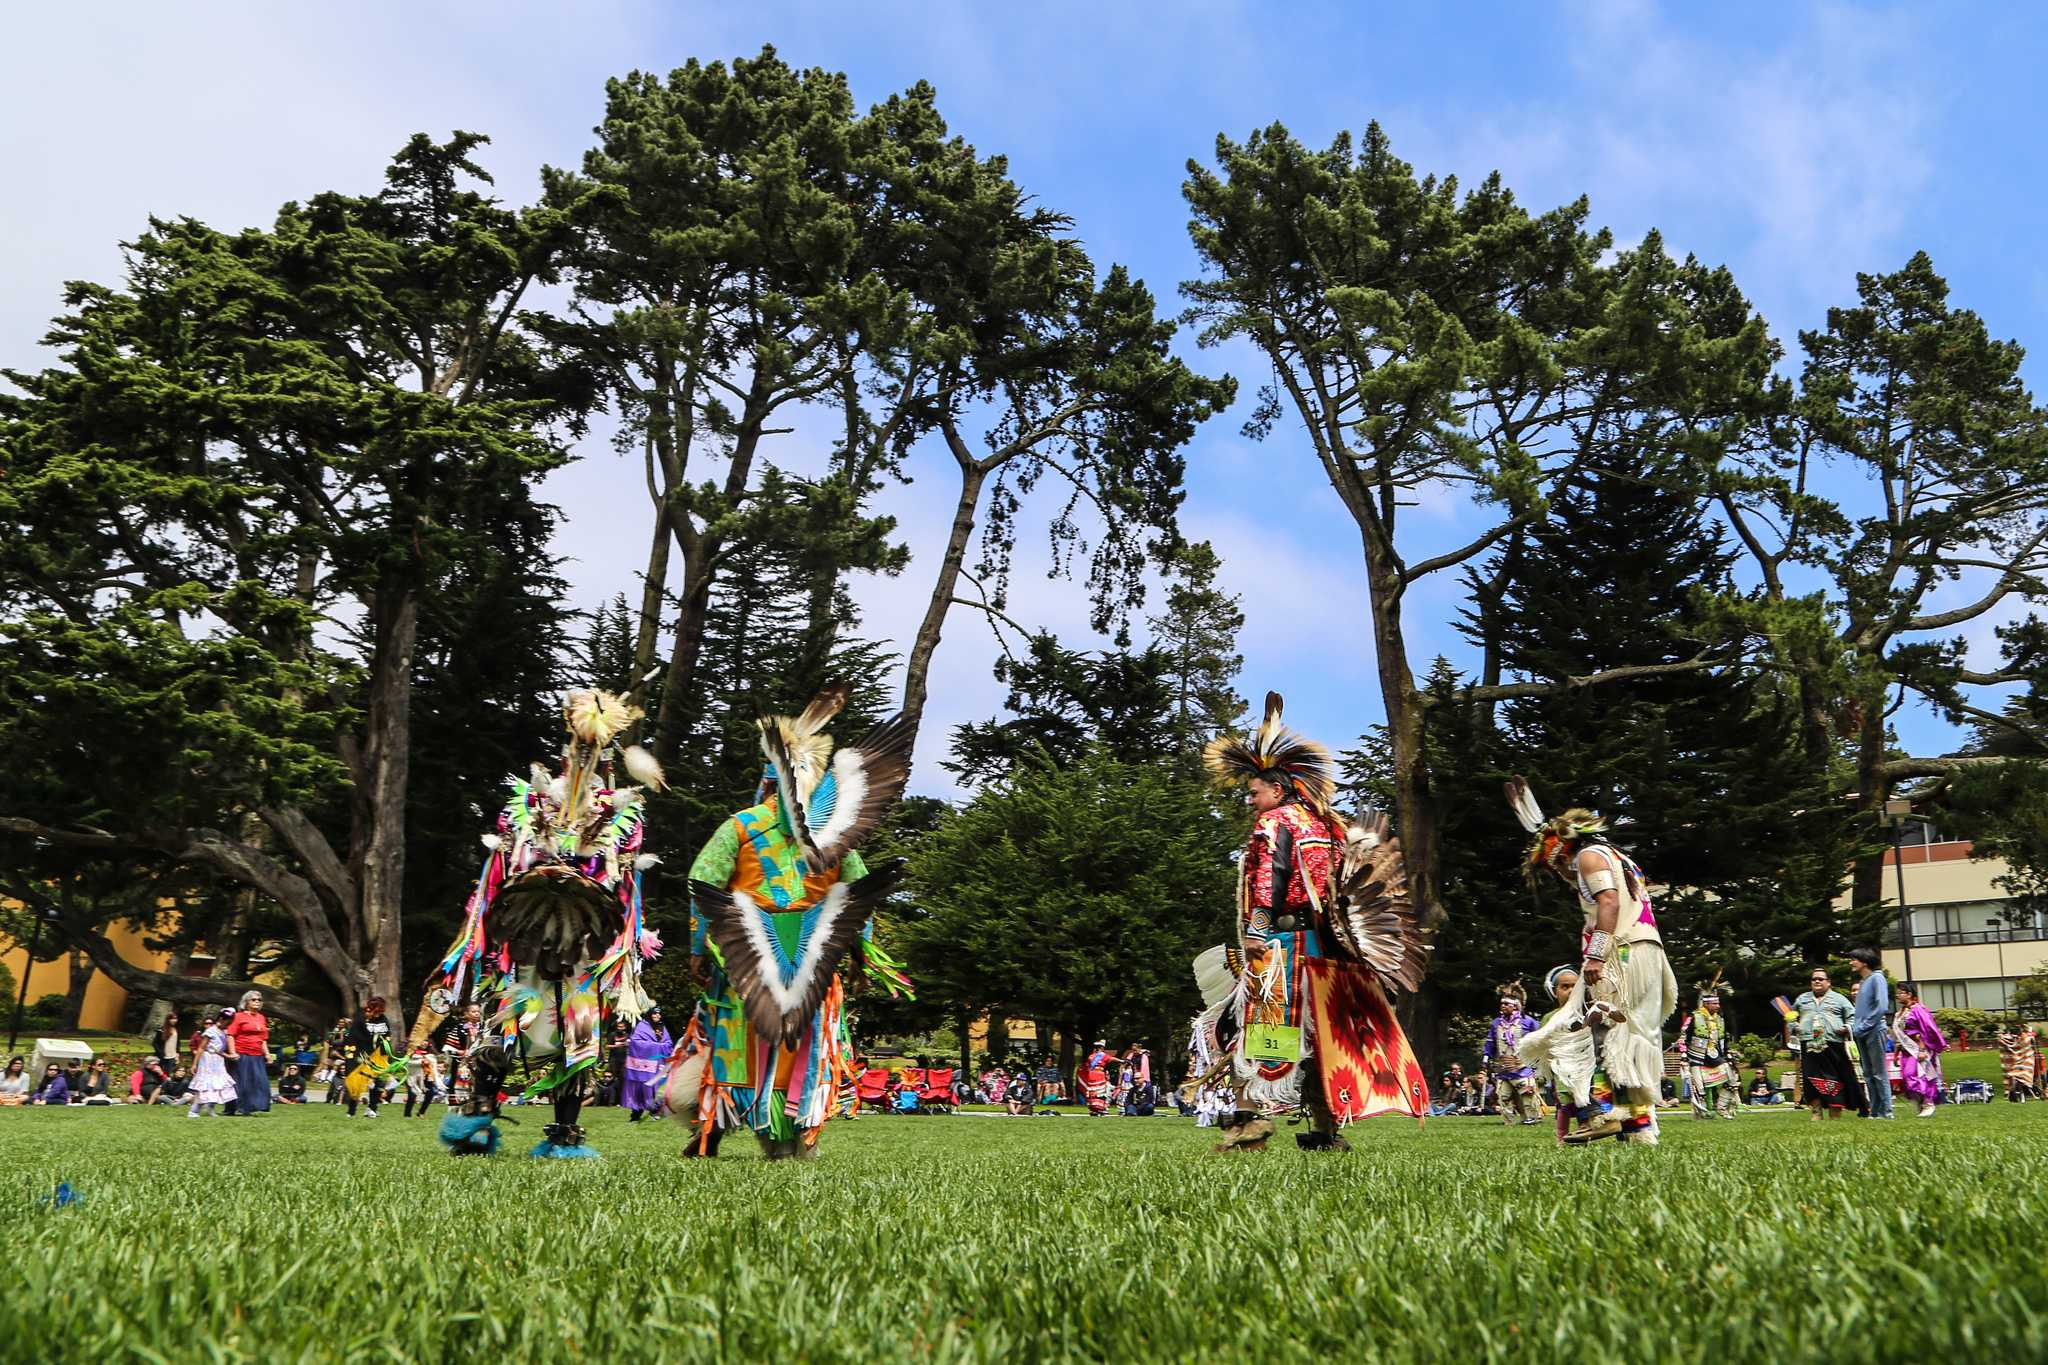 The quad at SF State was filled with color on Sunday, May 3, as dancers in traditional regalia and eager onlookers participated in the Celebration of Nations Pow-Wow put on by the Student Kouncil of Intertribal Nations. (Kate Fraser / Xpress)